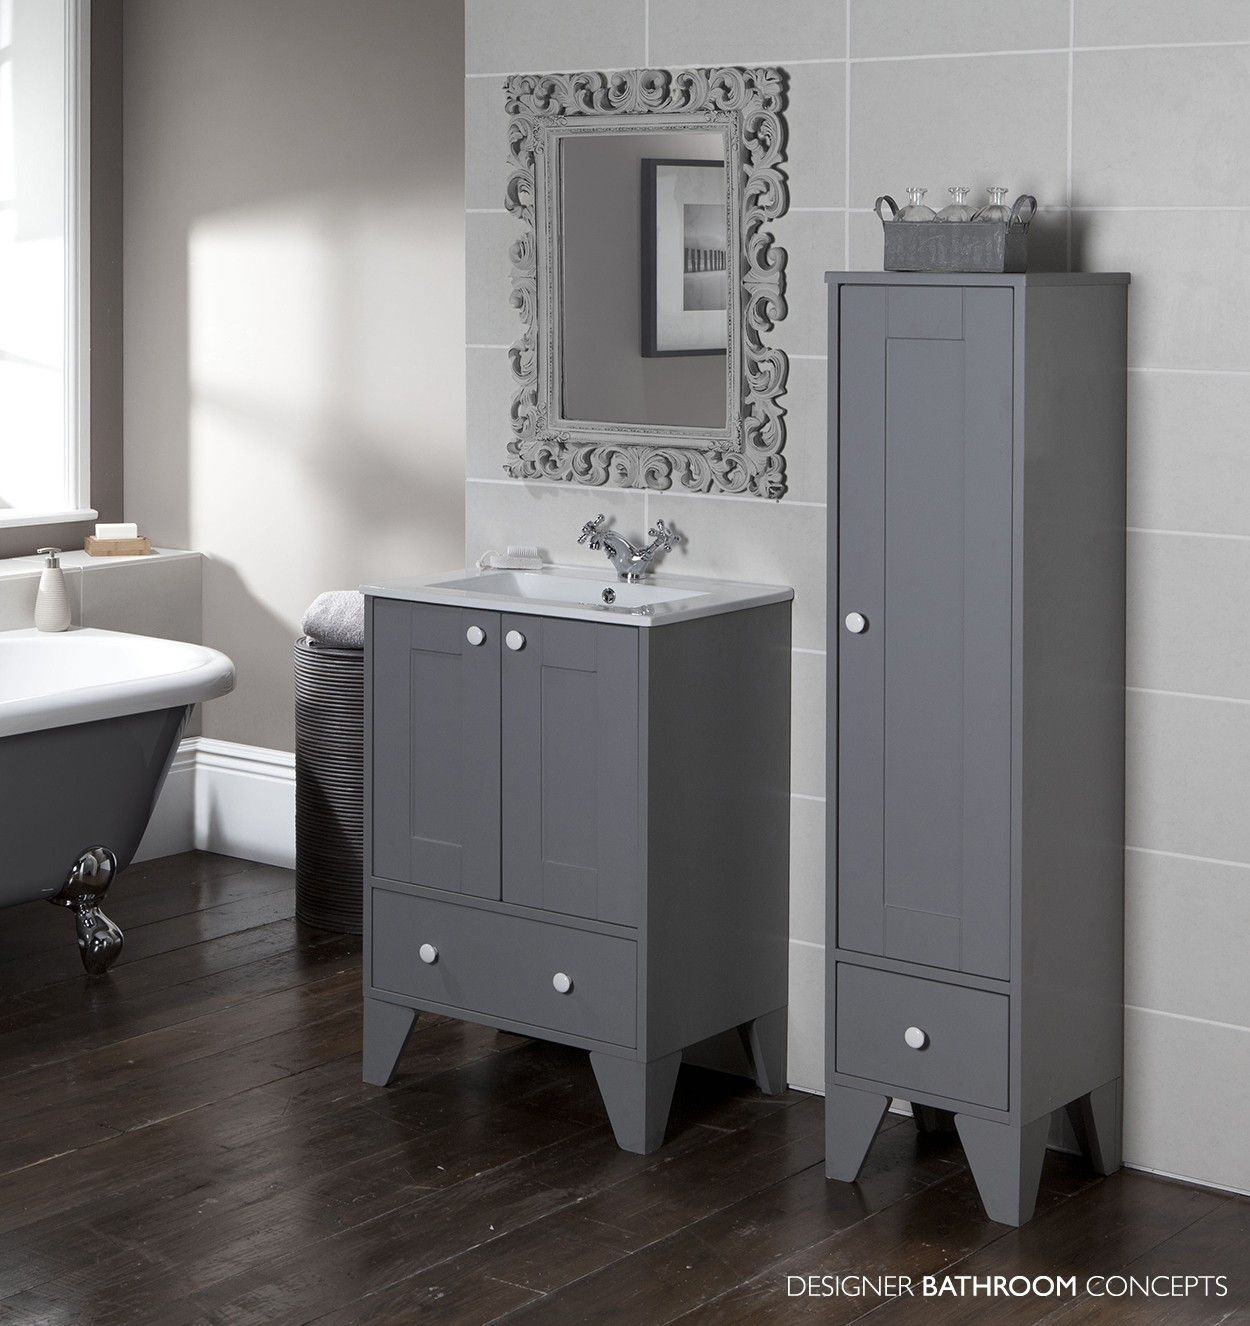 77 Free Standing Bathroom Cabinets Uk Corner Kitchen Cupboard Ideas Check More At Ht Bathroom Storage Cabinet Bathroom Cabinets Uk Bathroom Standing Cabinet